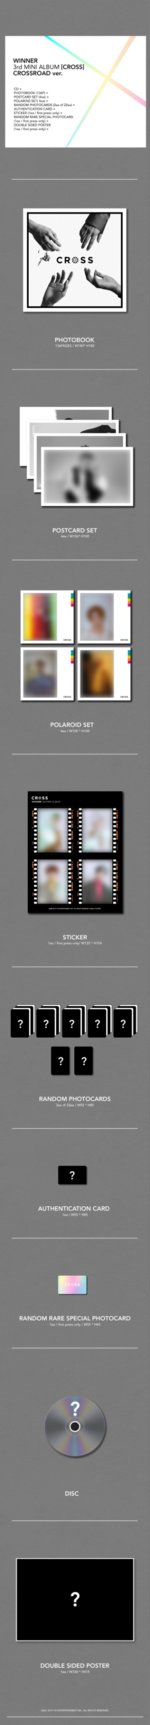 WINNER Cross album packaging (Crossroad)